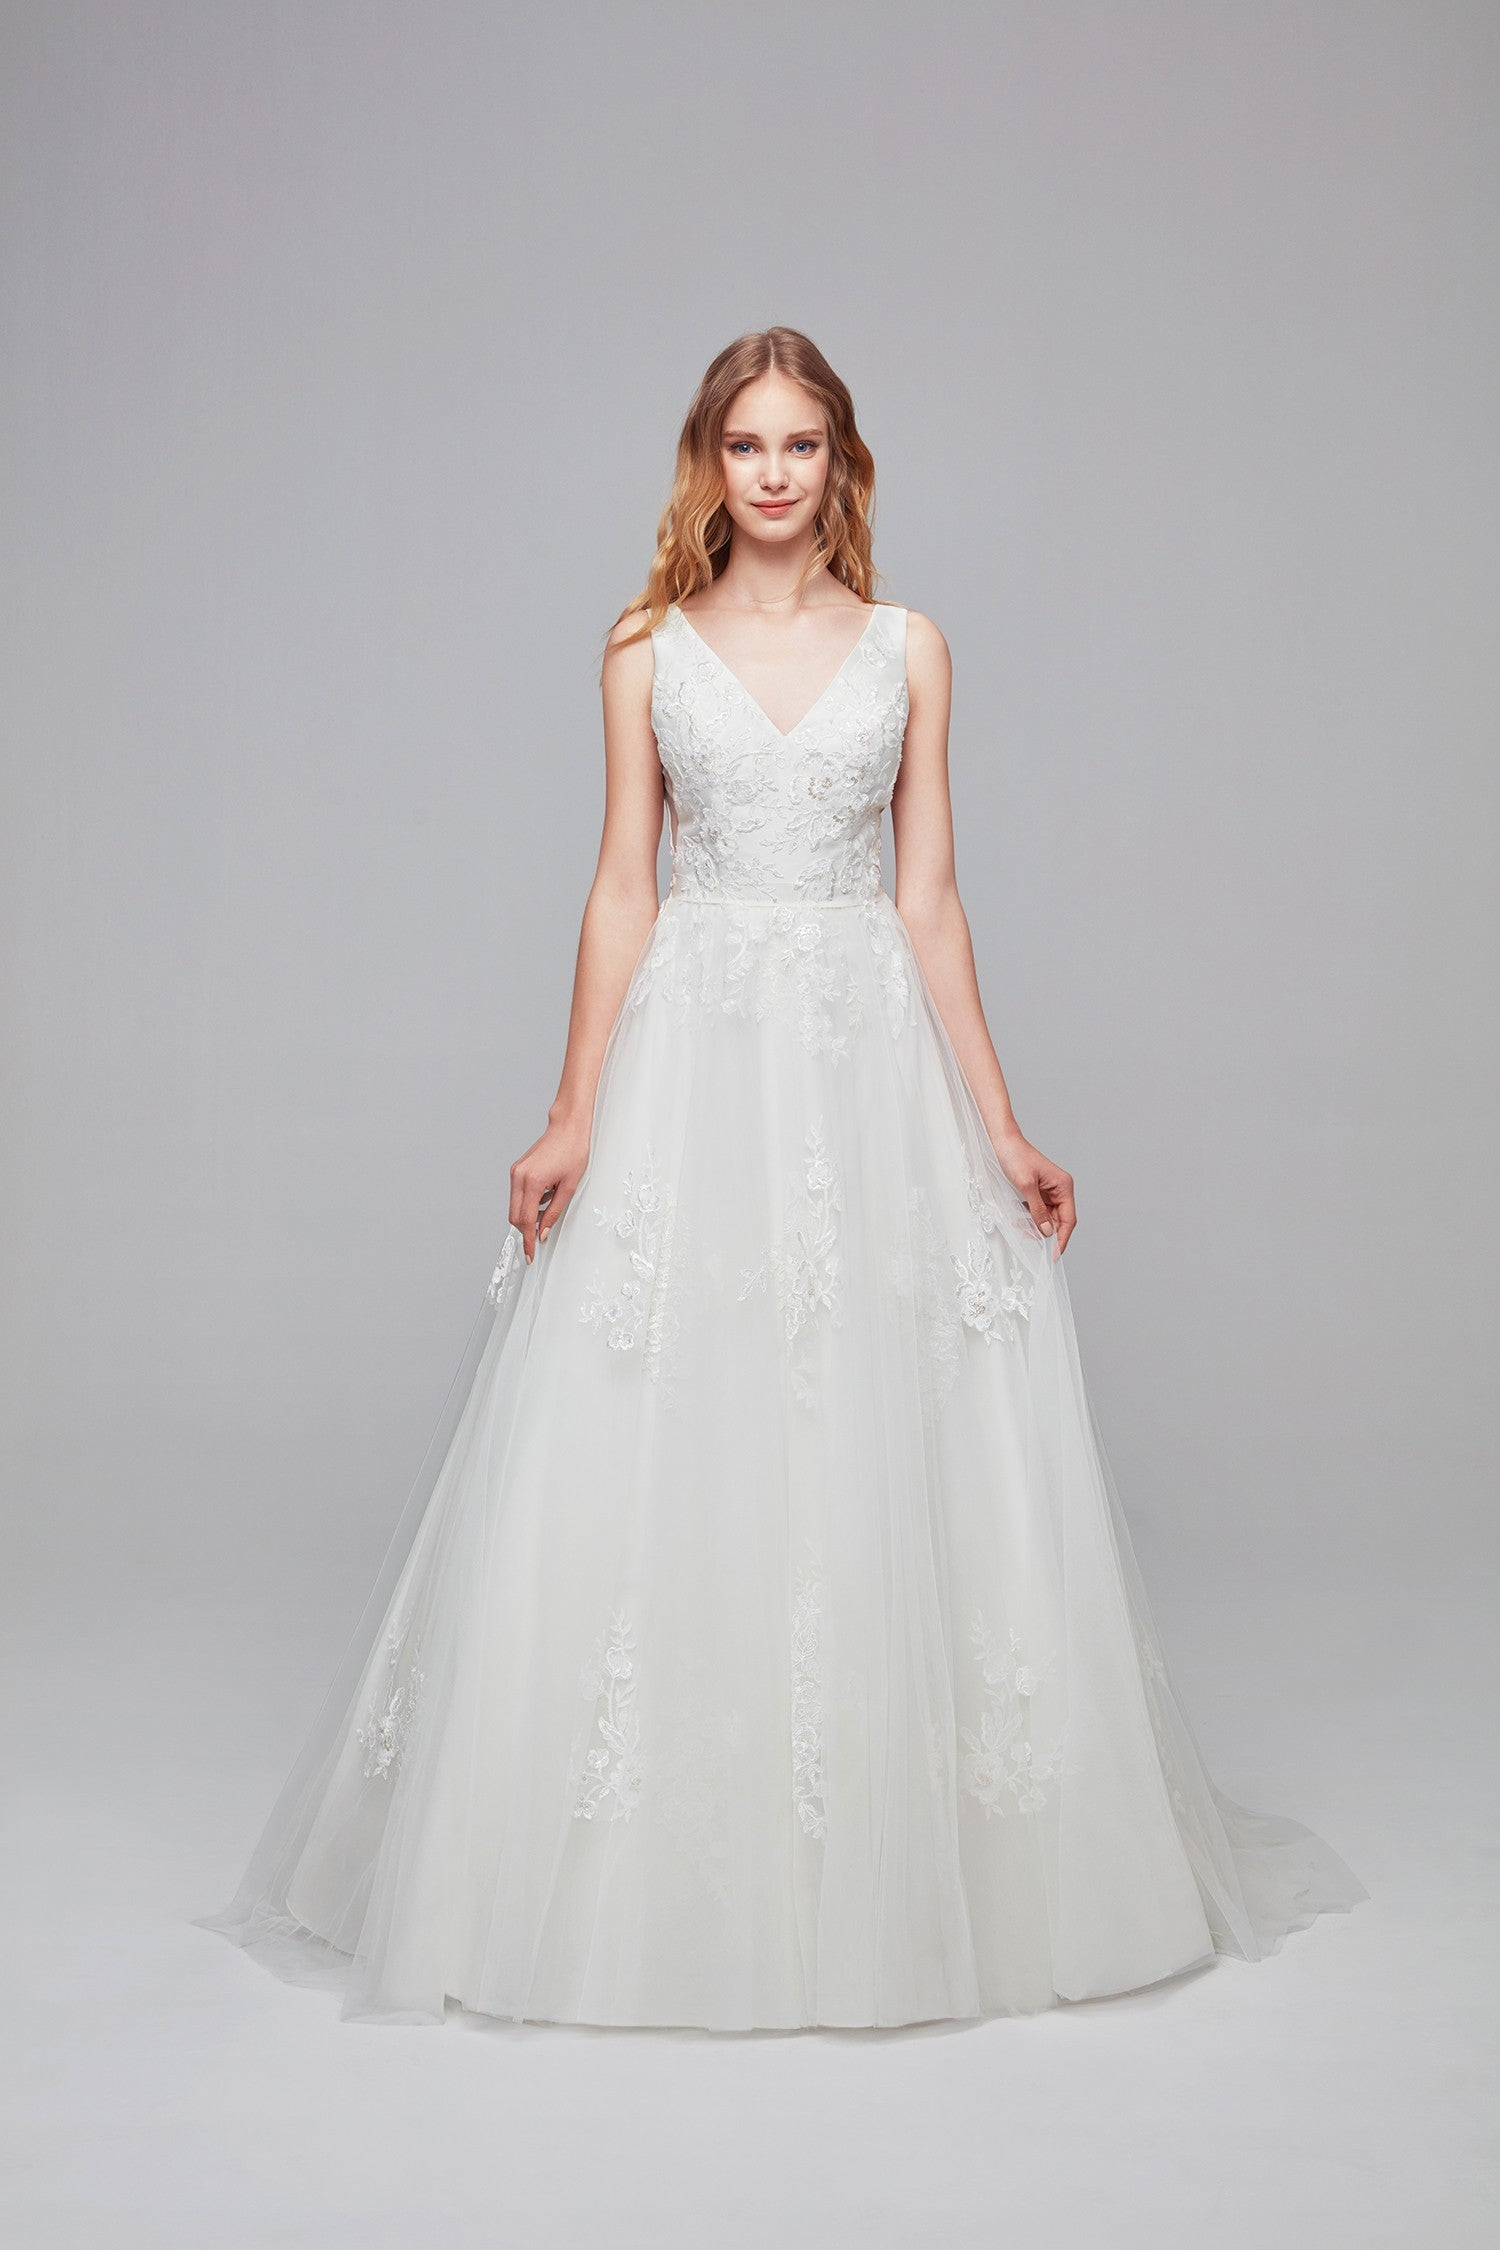 Mikado and Tulle V-Neck Ball Gown Wedding Dress-WG3877